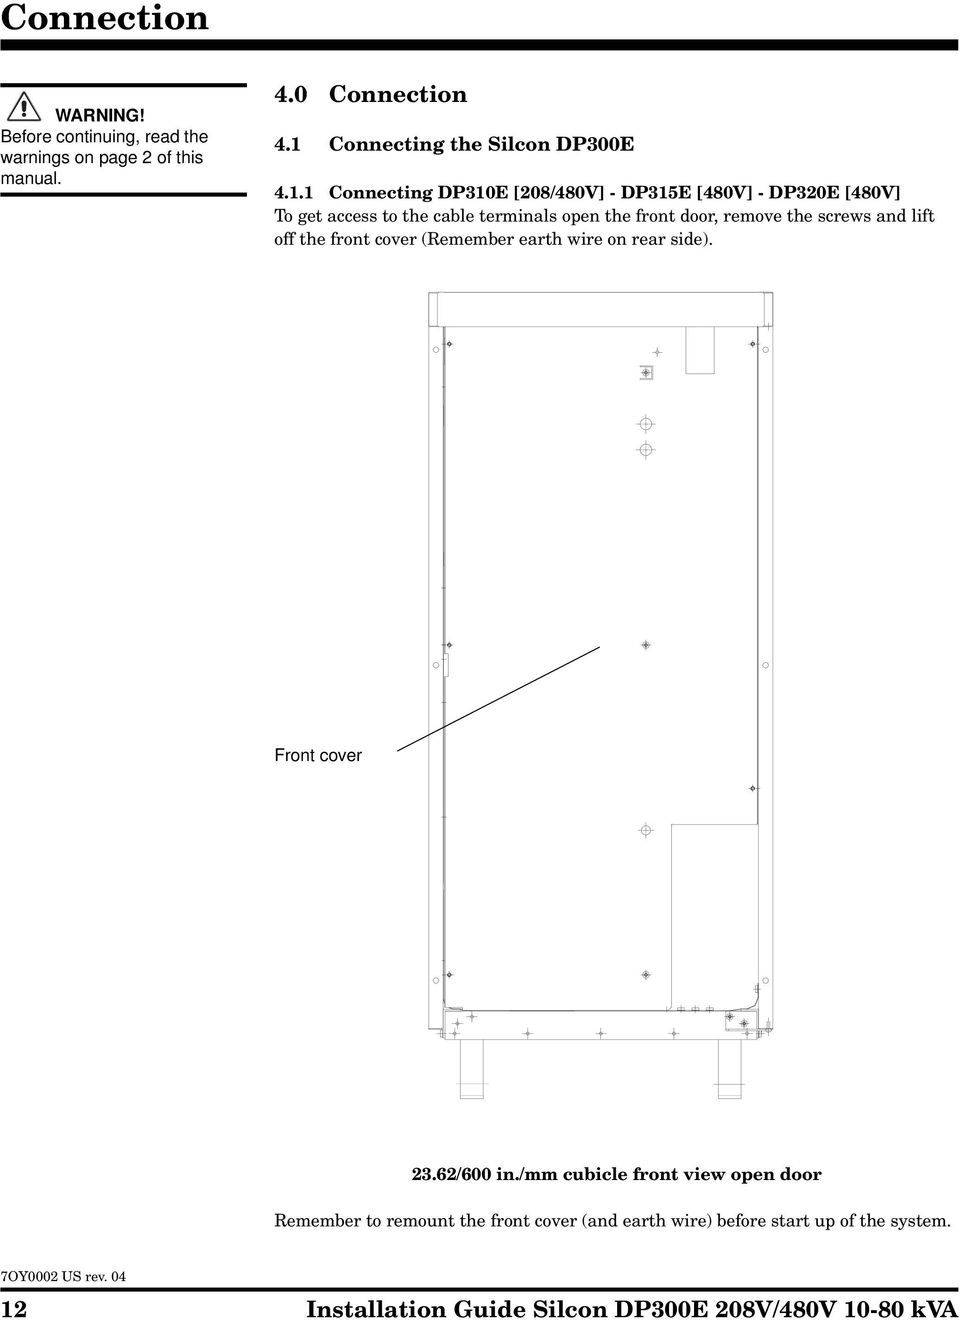 Silcon Dp300e 208v 480v 10 80kva Installation Guide Pdf Yale Forklift Wiring Diagram On Telephone Box View Cable Terminals Open The Front Door Remove Screws And Lift Off Cover 13 Connection Conduit